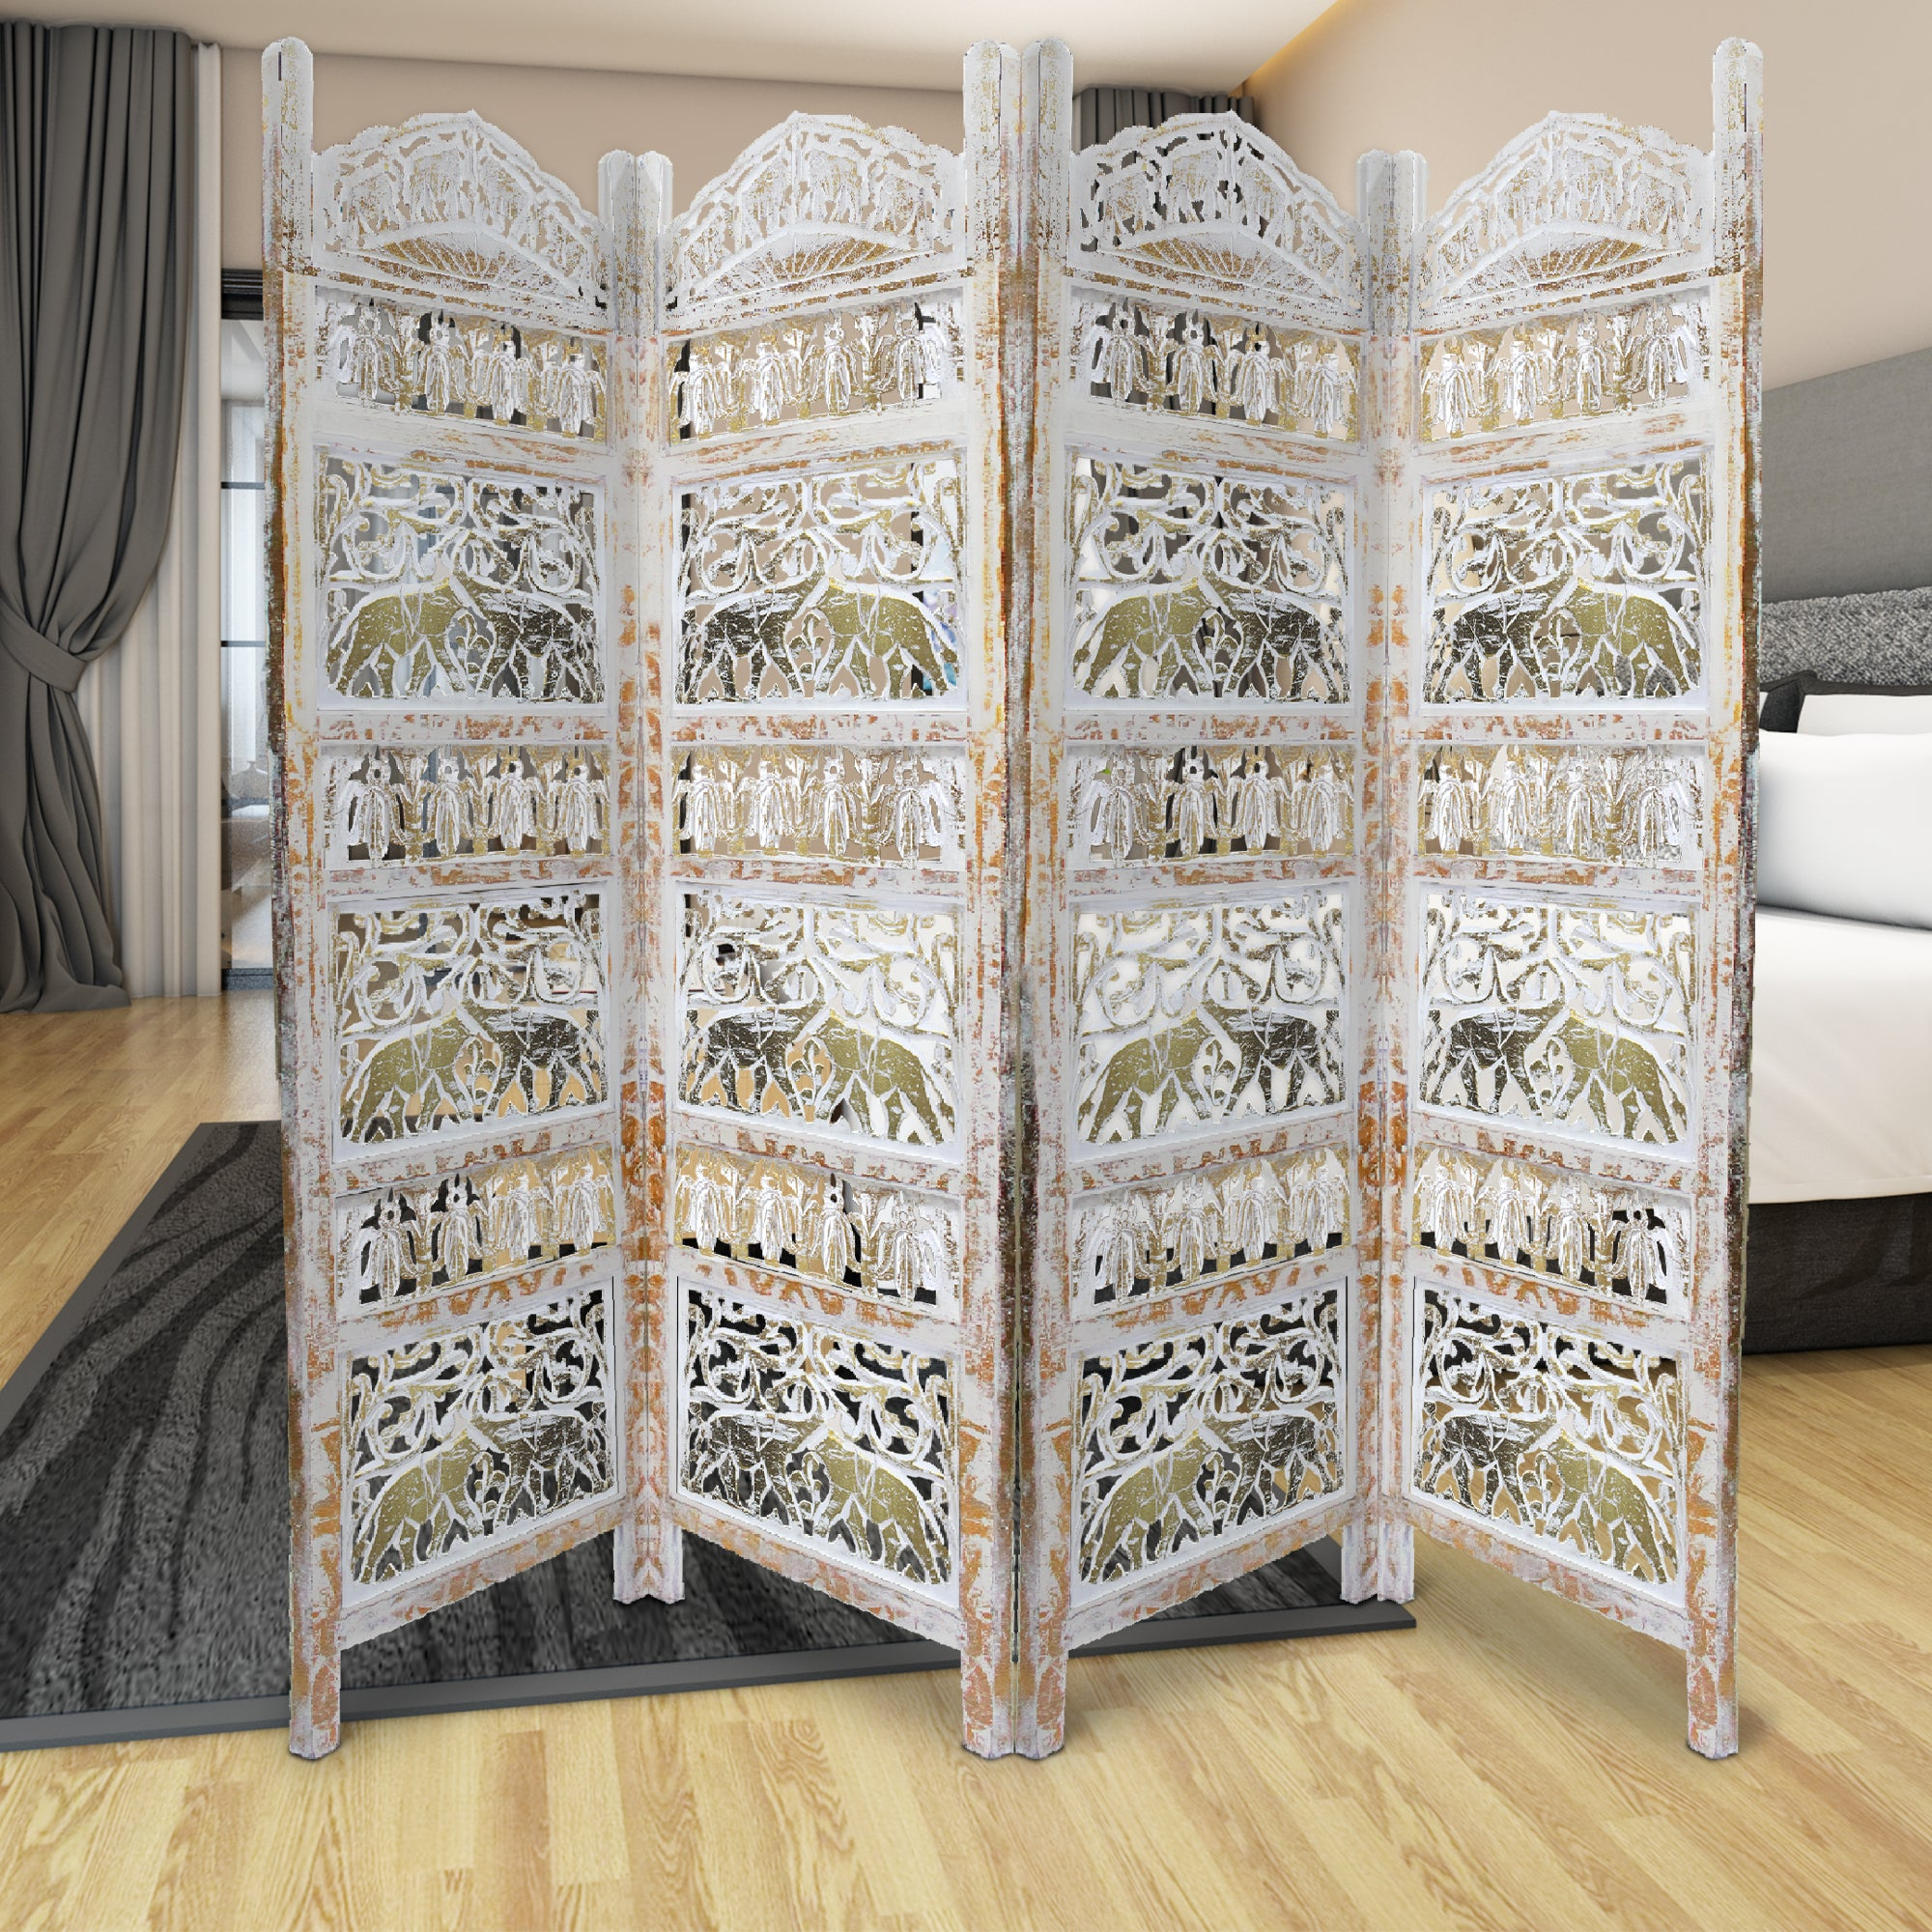 Benjara Classic 4 Panel Mango Wood Room Divider With Elephant Carvings Gold And White Bm80947 Benzara Com